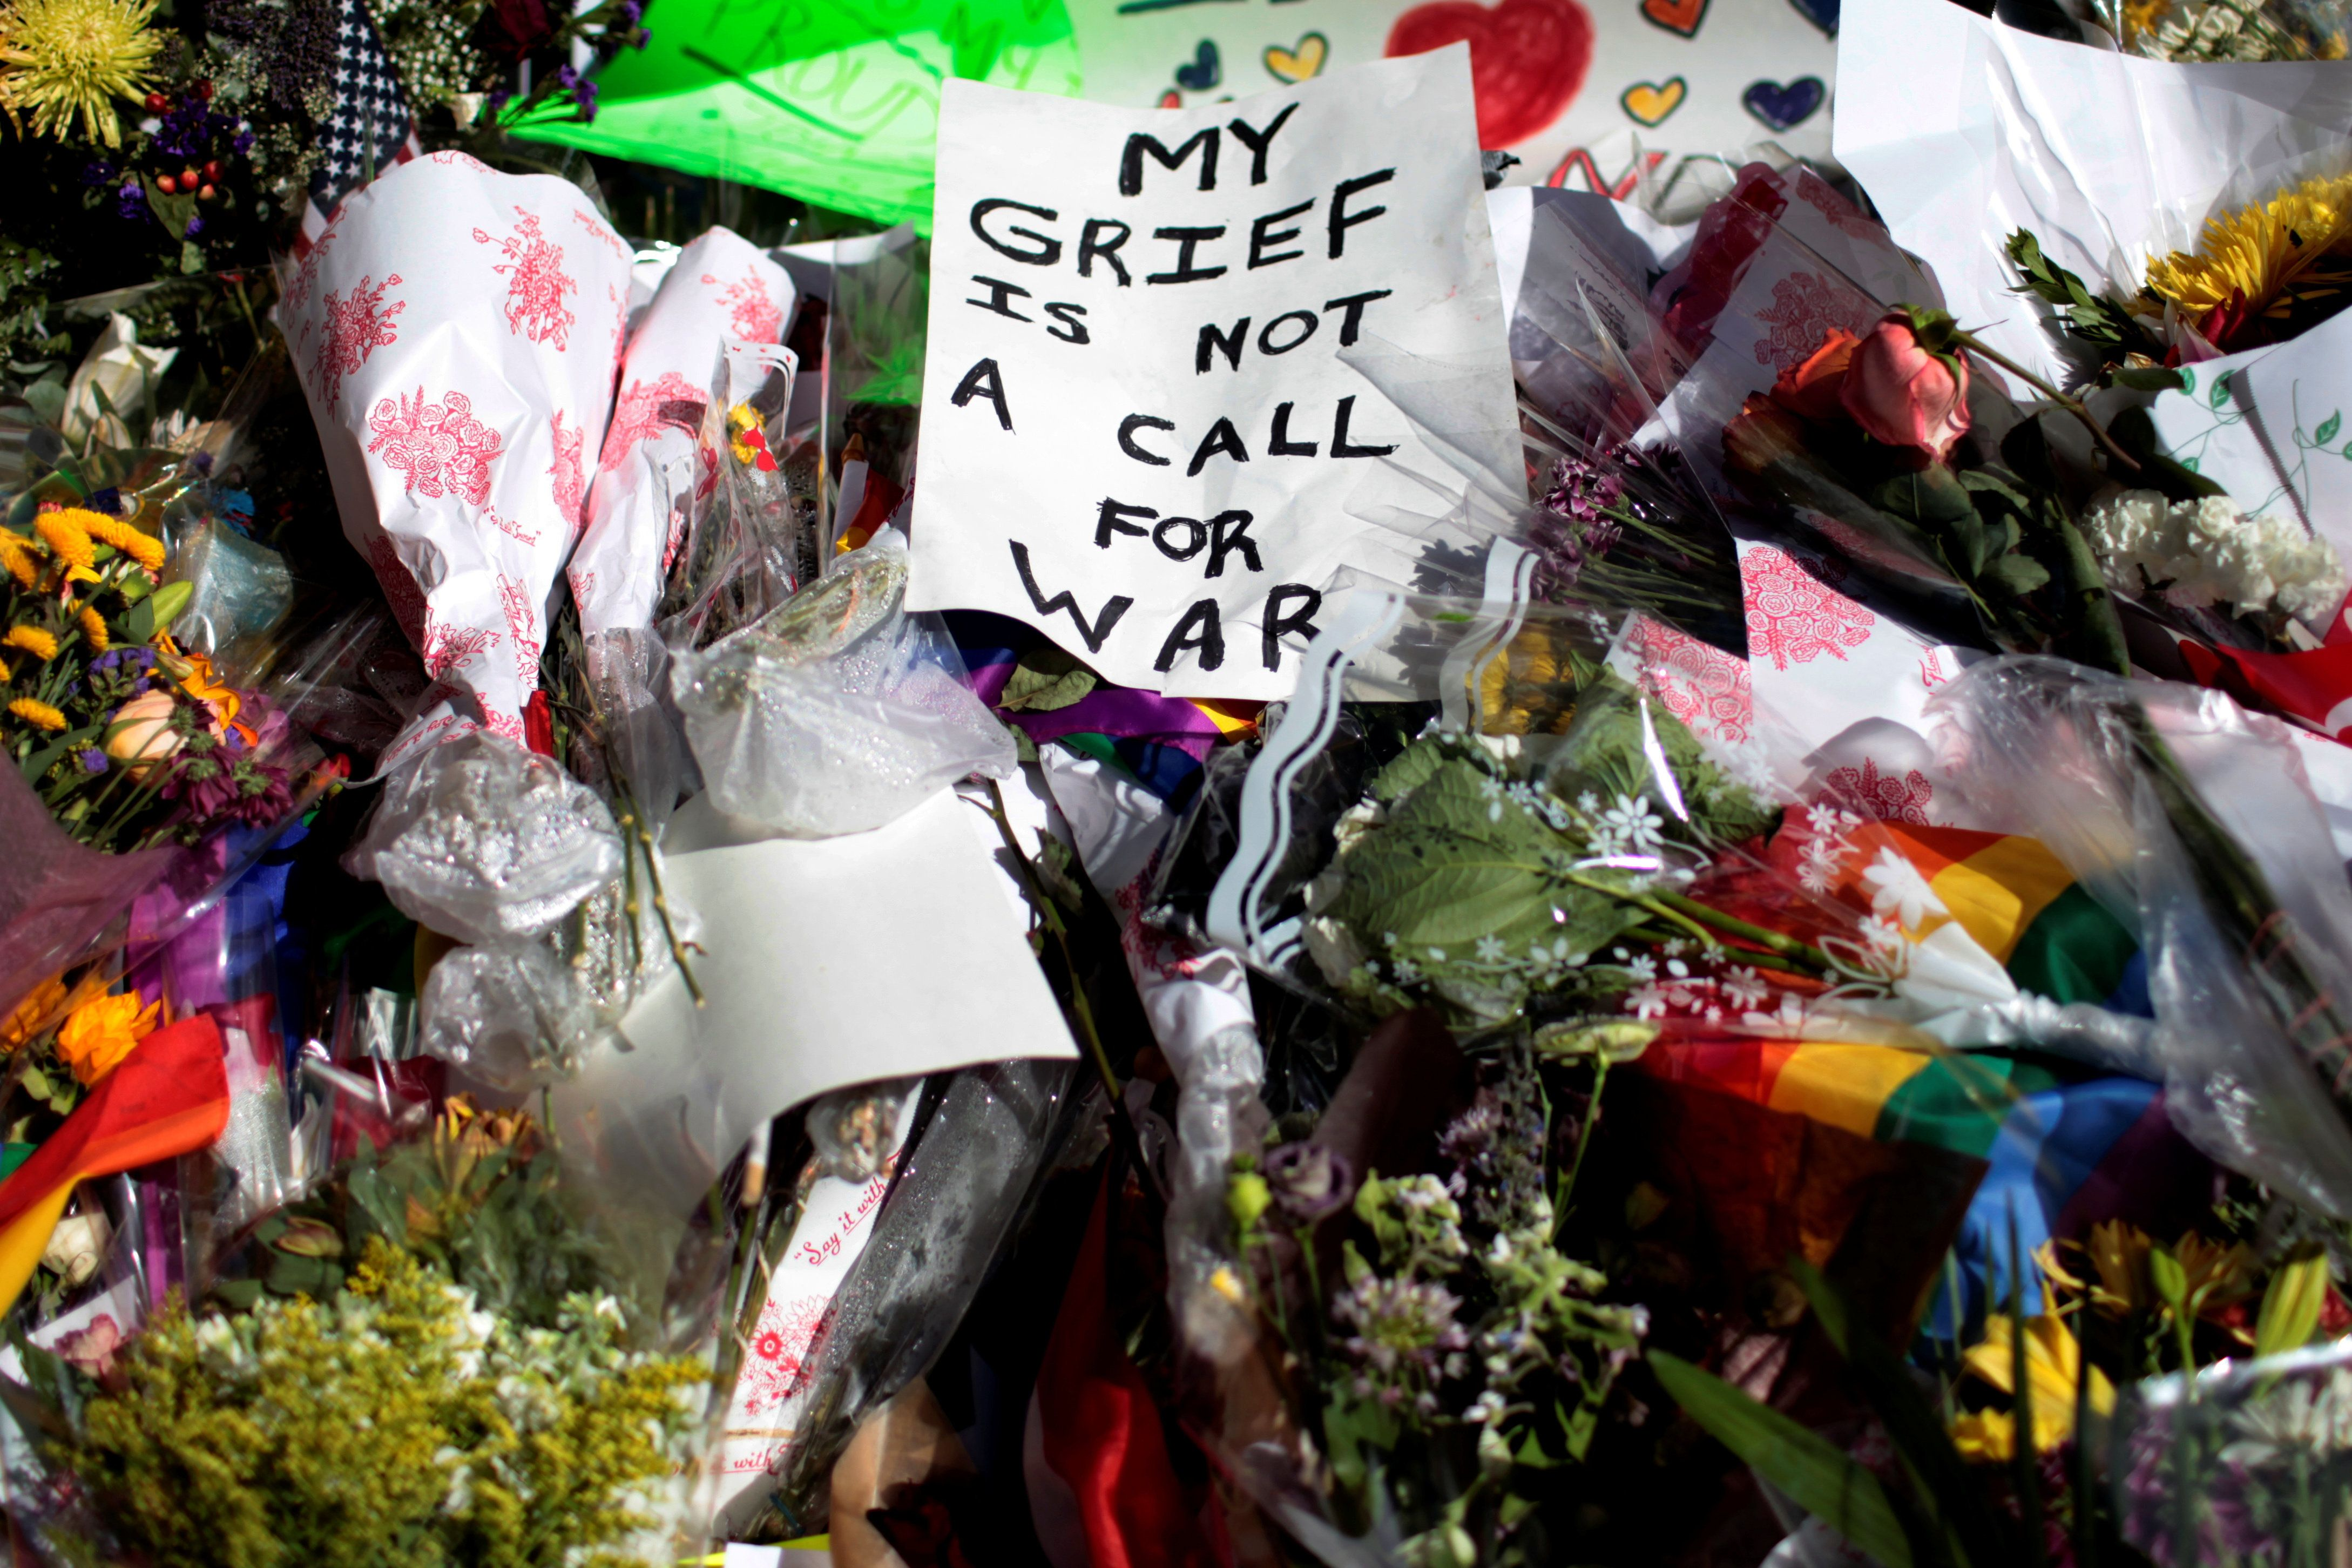 A sign sits atop a pile of flowers at a makeshift memorial to remember the victims of the mass shooting at a gay nightclub in Orlando, outside the Stonewall Inn in Manhattan, New York, U.S., June 15, 2016. REUTERS/Mike Segar